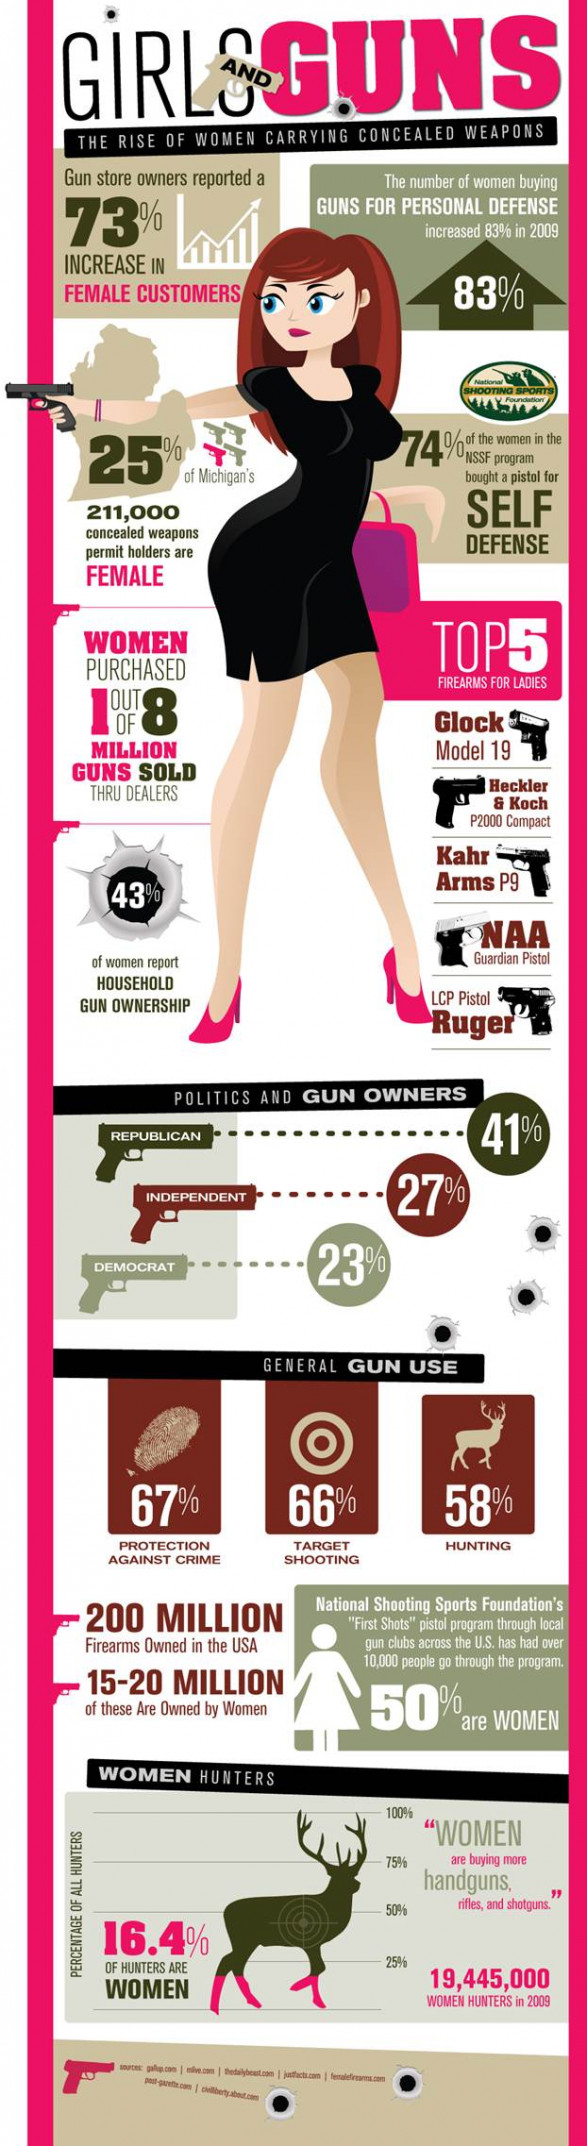 Girls & Guns - The Rise of Women Carrying Concealed Weapons